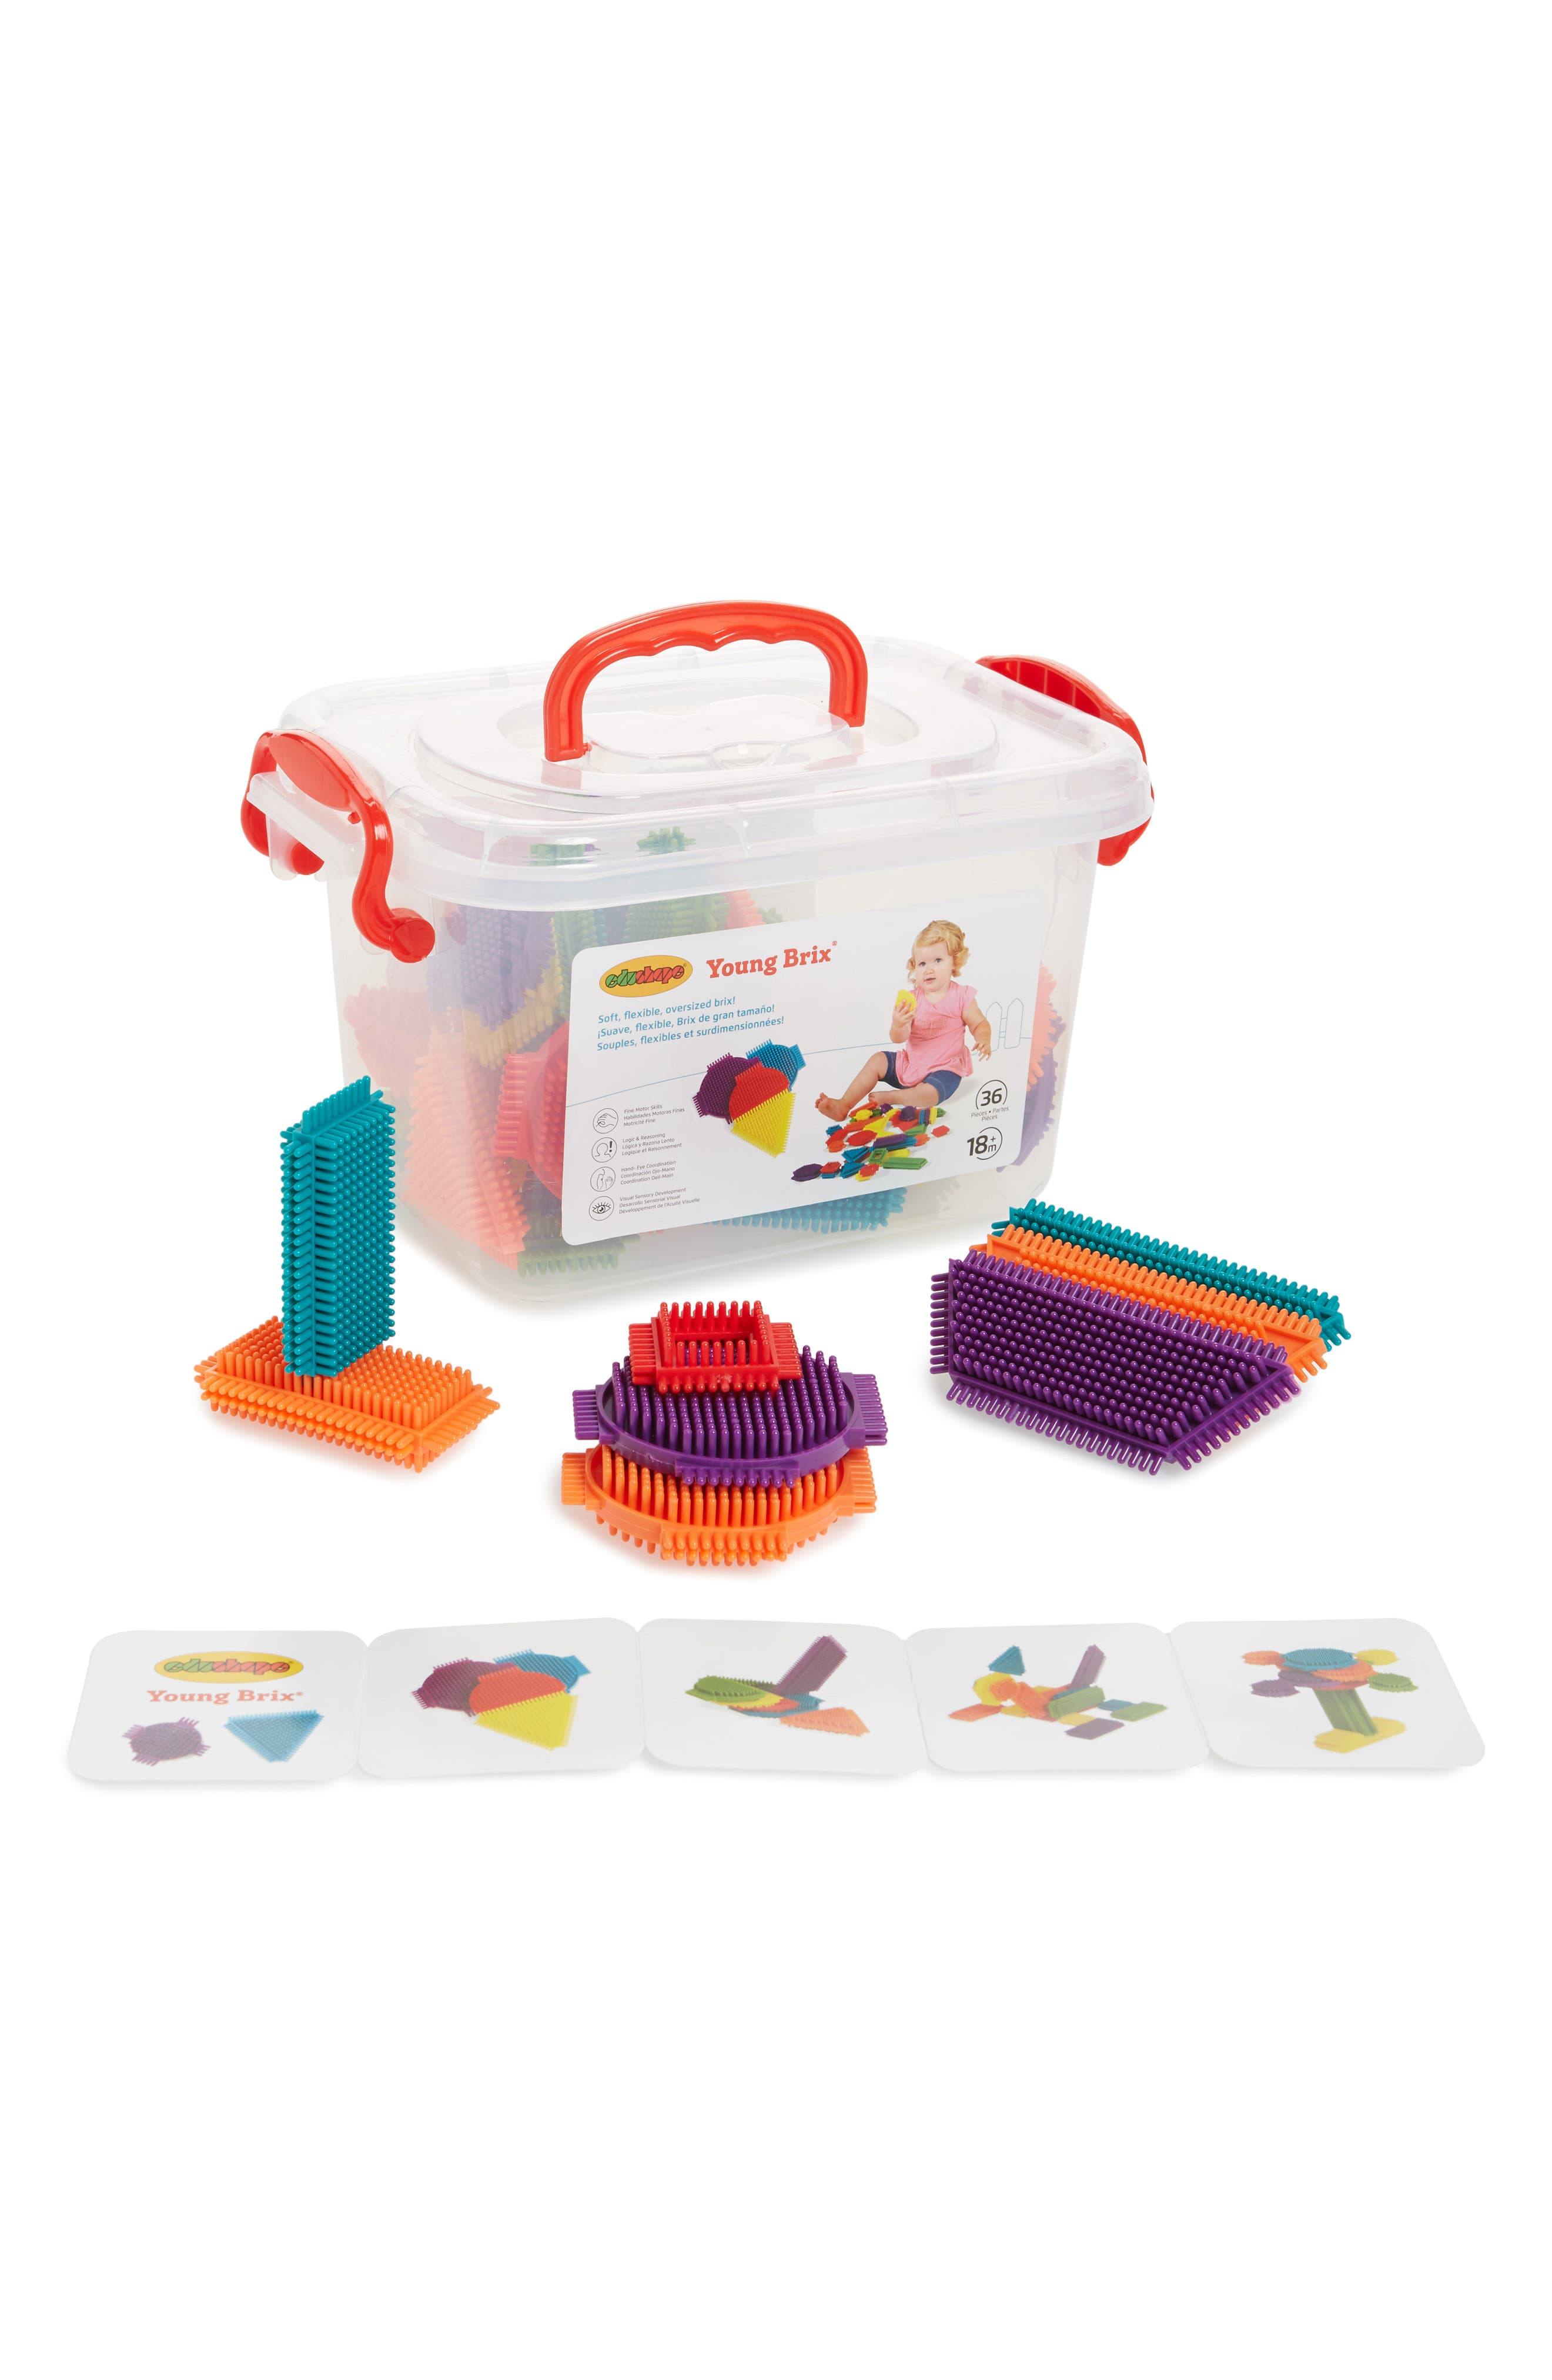 Main Image - edushape Young Brix 36-Piece Building Set